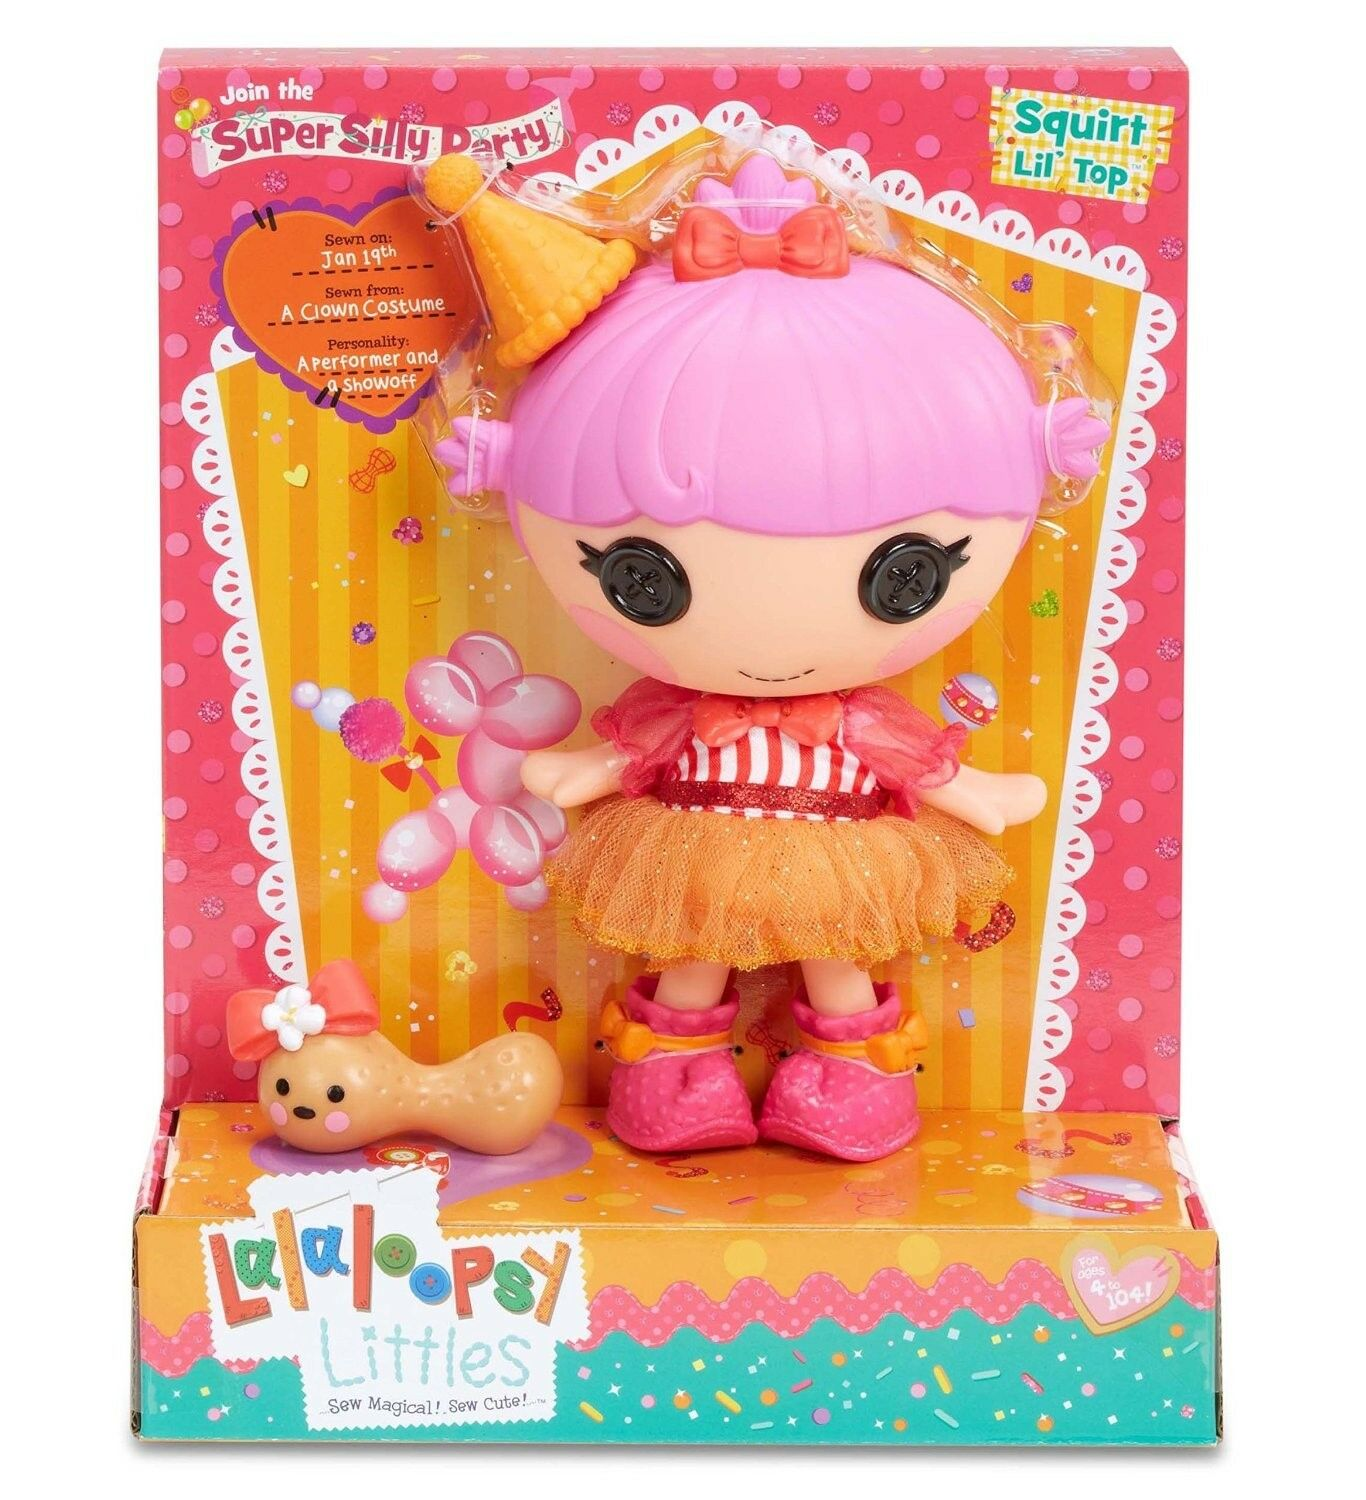 LALALOOPSY LITTLES SUPER SILLY PARTY SQUIRT LIL' TOP BRAND NEW